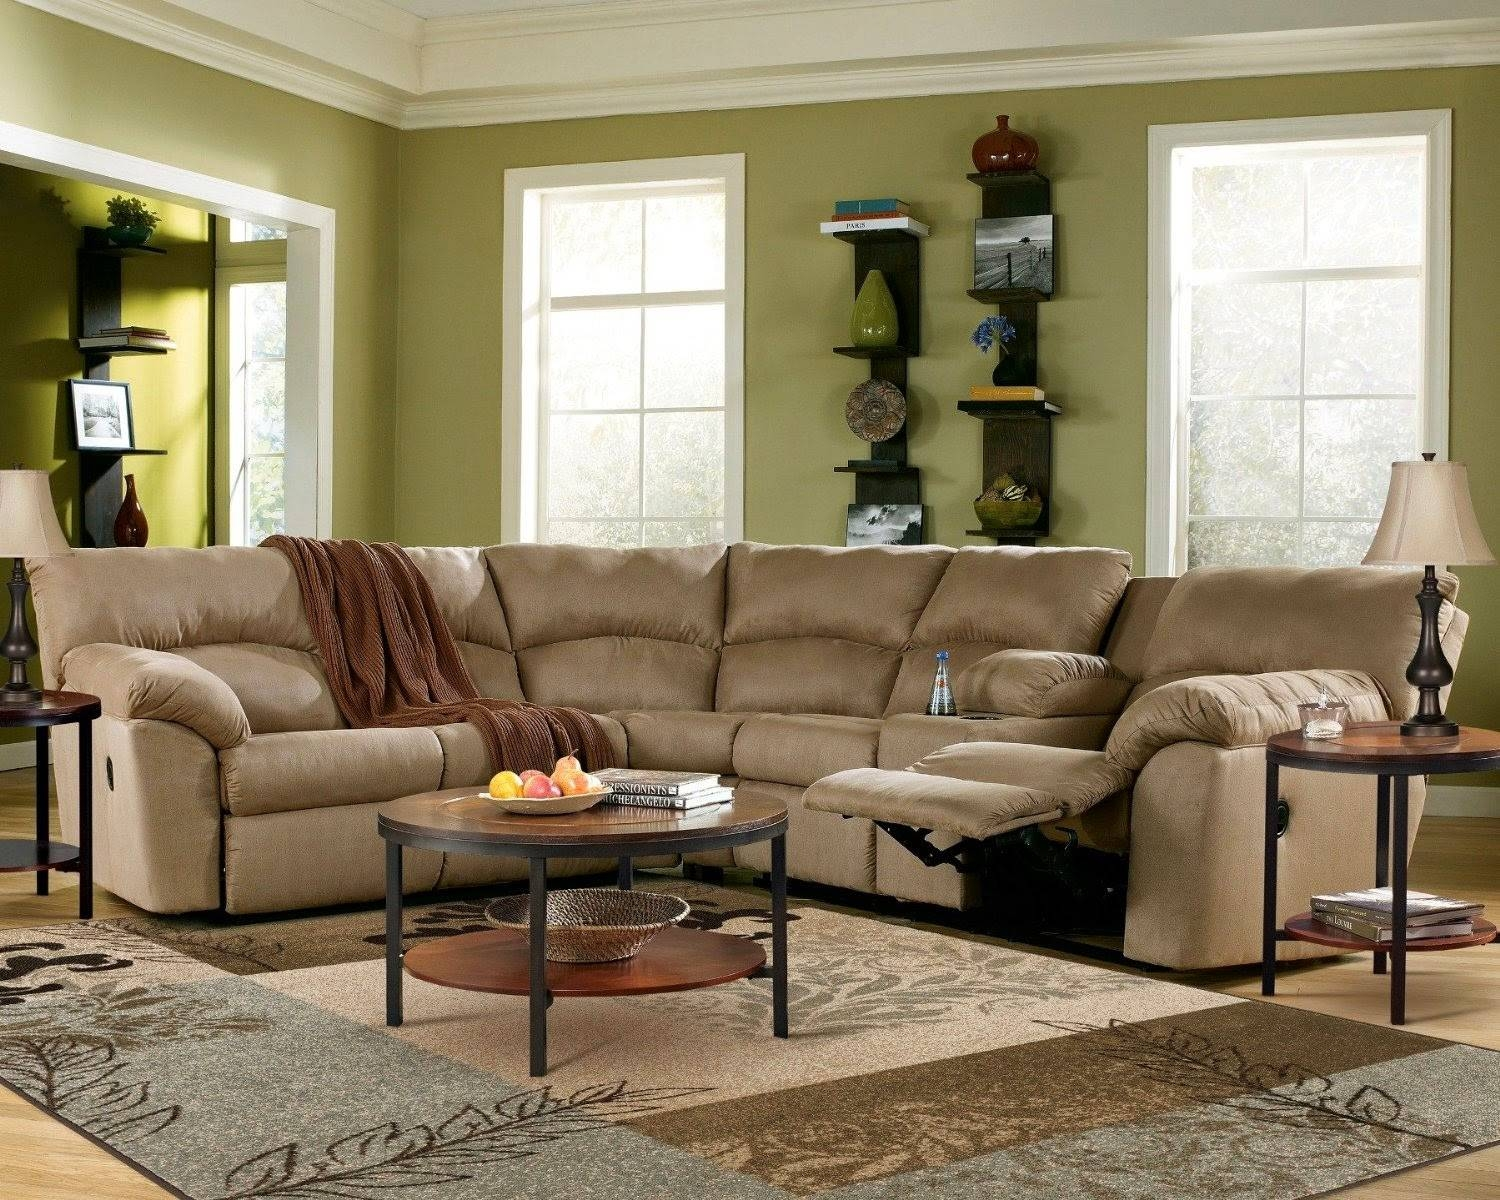 Furniture: Large Sectional Sofas With Recliners | Sectional with regard to Curved Sectional Sofa With Recliner (Image 16 of 30)